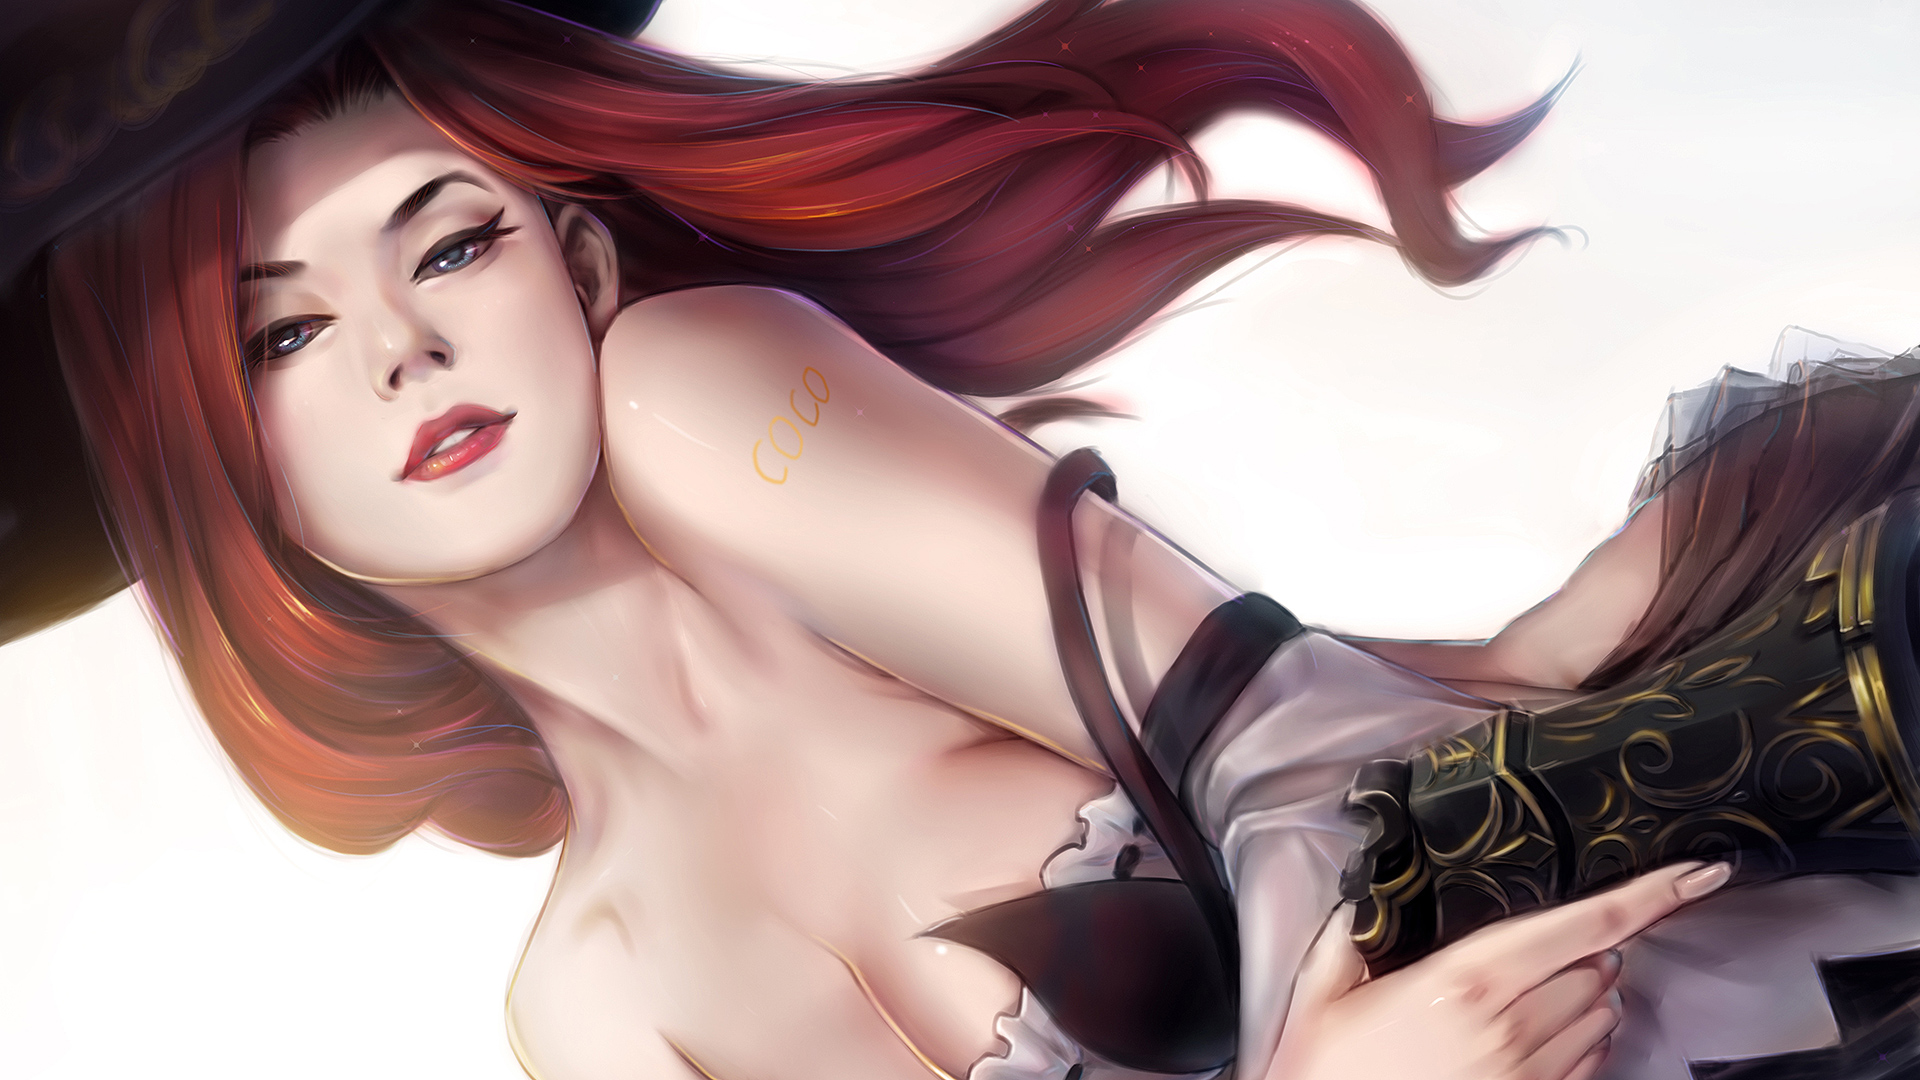 Download 1920x1080 Wallpaper Miss Fortune A Sexy Girl Of League Of